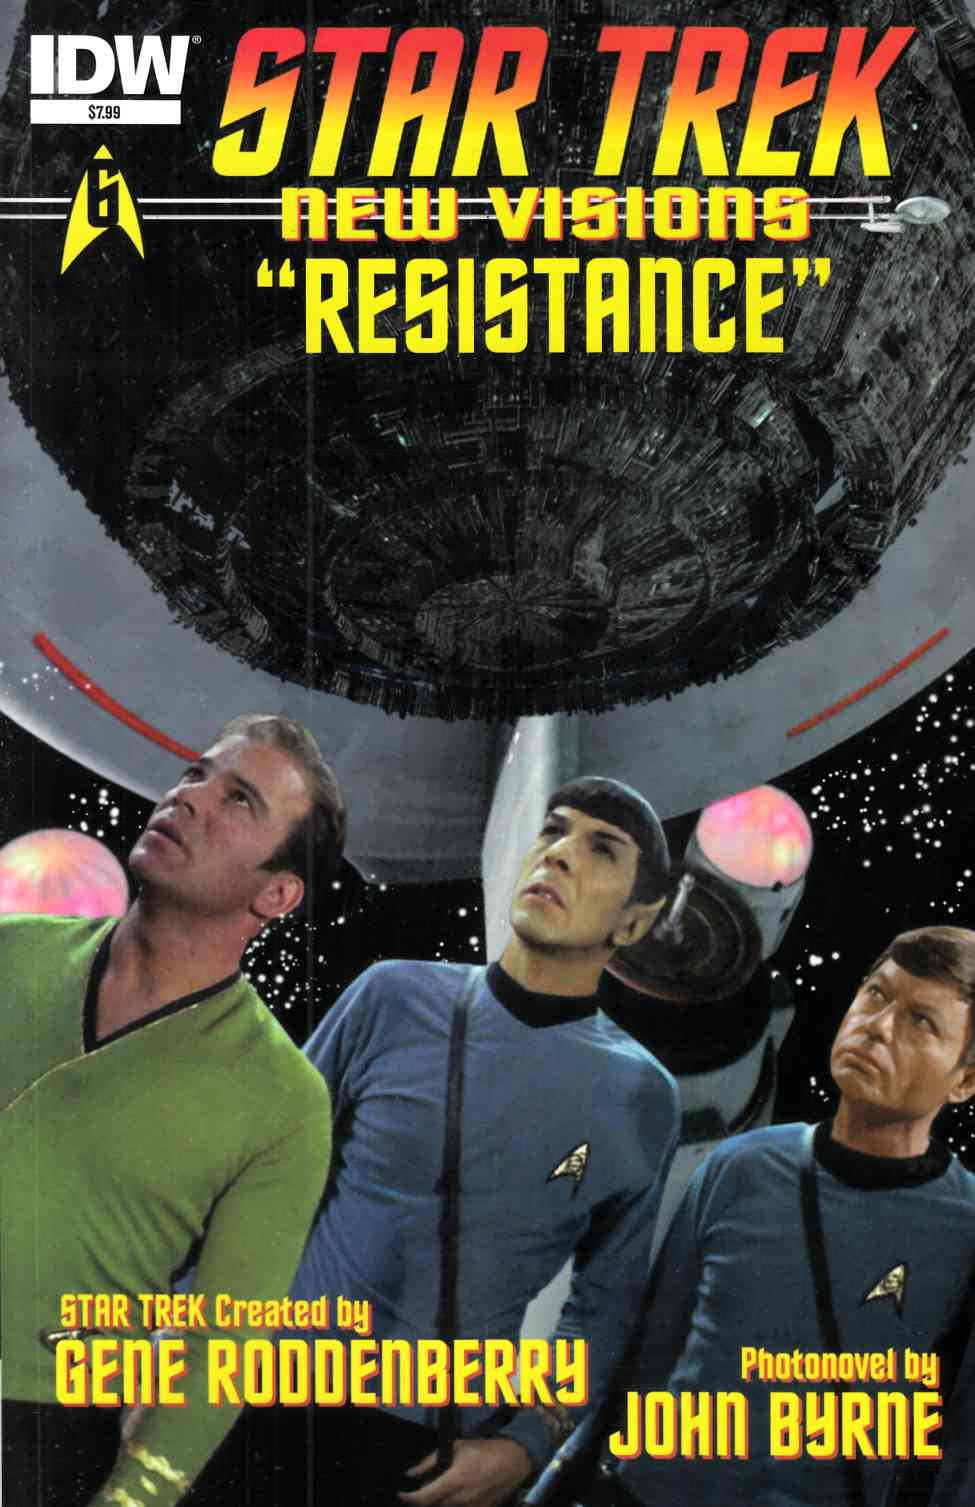 Star Trek New Visions Resistance (One Shot) [IDW Comic]